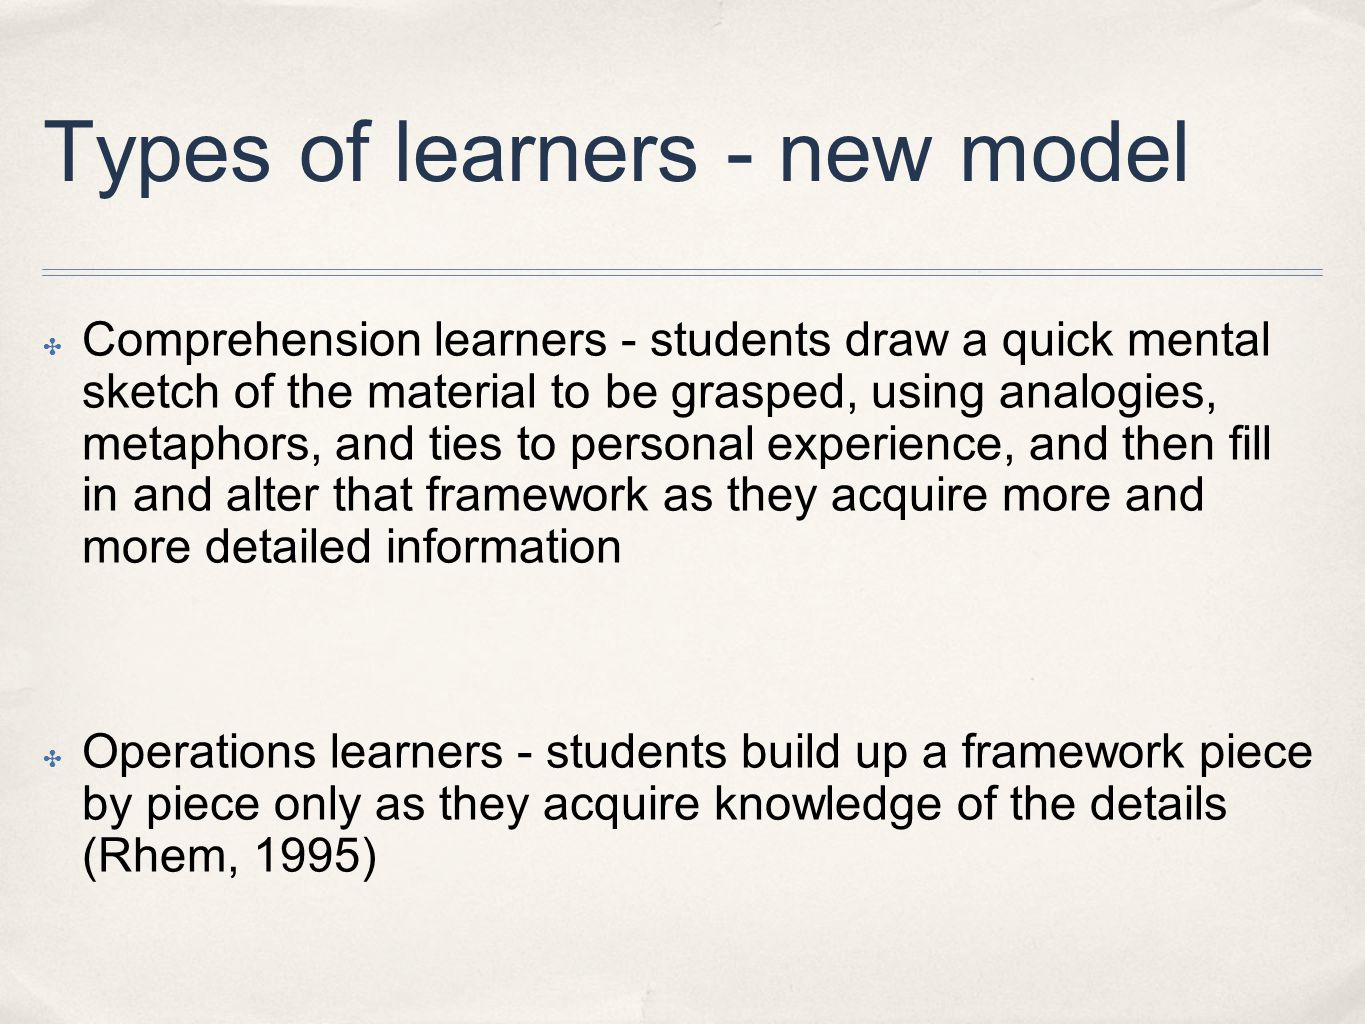 Types of learners - new model ✤ Comprehension learners - students draw a quick mental sketch of the material to be grasped, using analogies, metaphors, and ties to personal experience, and then fill in and alter that framework as they acquire more and more detailed information ✤ Operations learners - students build up a framework piece by piece only as they acquire knowledge of the details (Rhem, 1995)